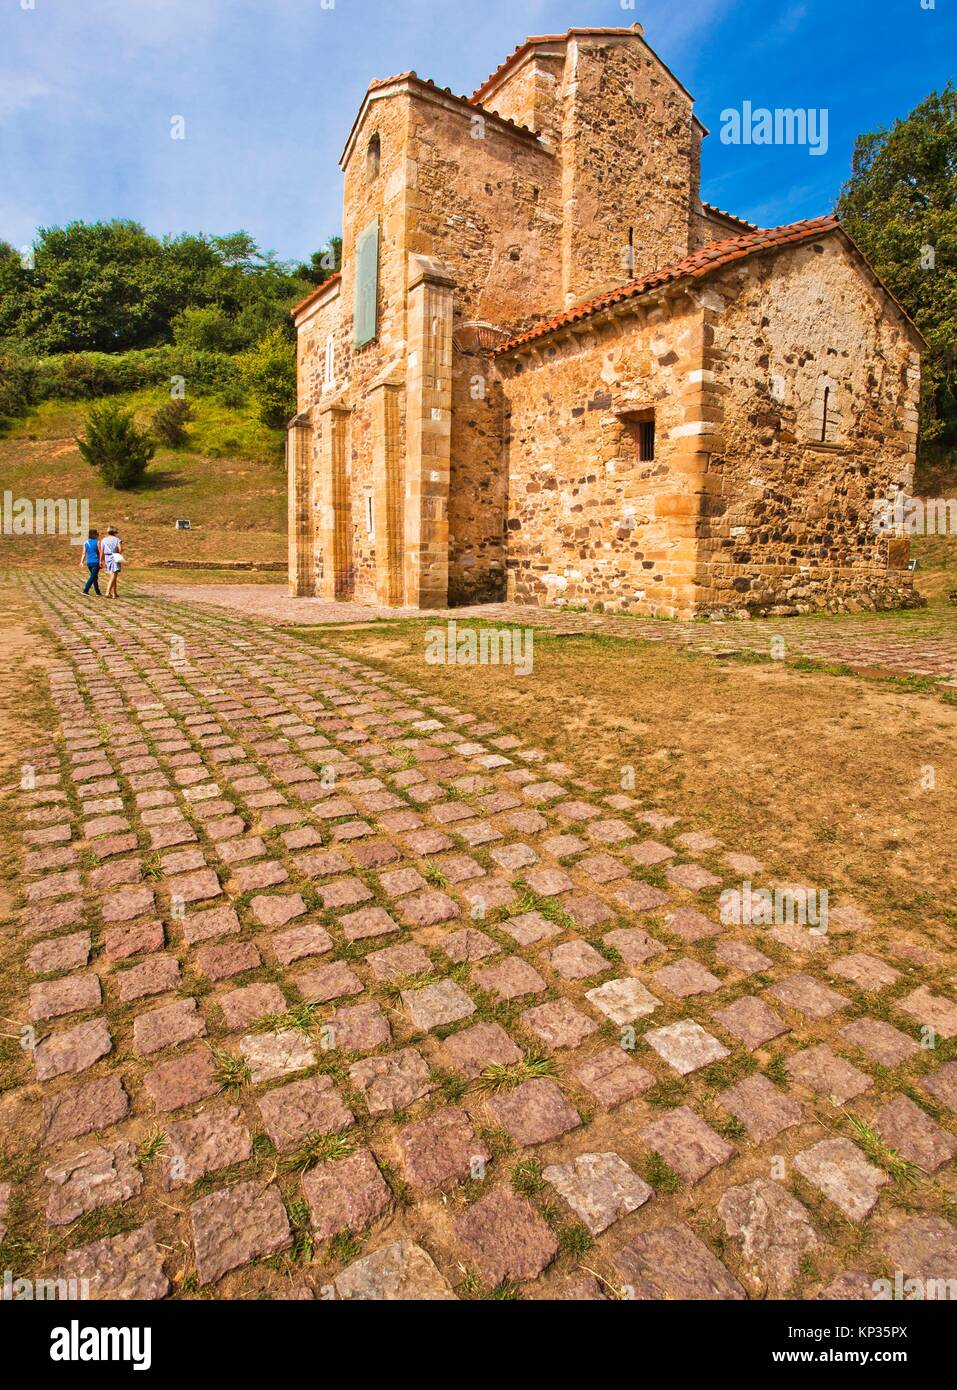 Church of St. Michael of Lillo, San Miguel de Lillo church, pre-romanesque, 9th Century, Oviedo, Asturias, Spain - Stock Image